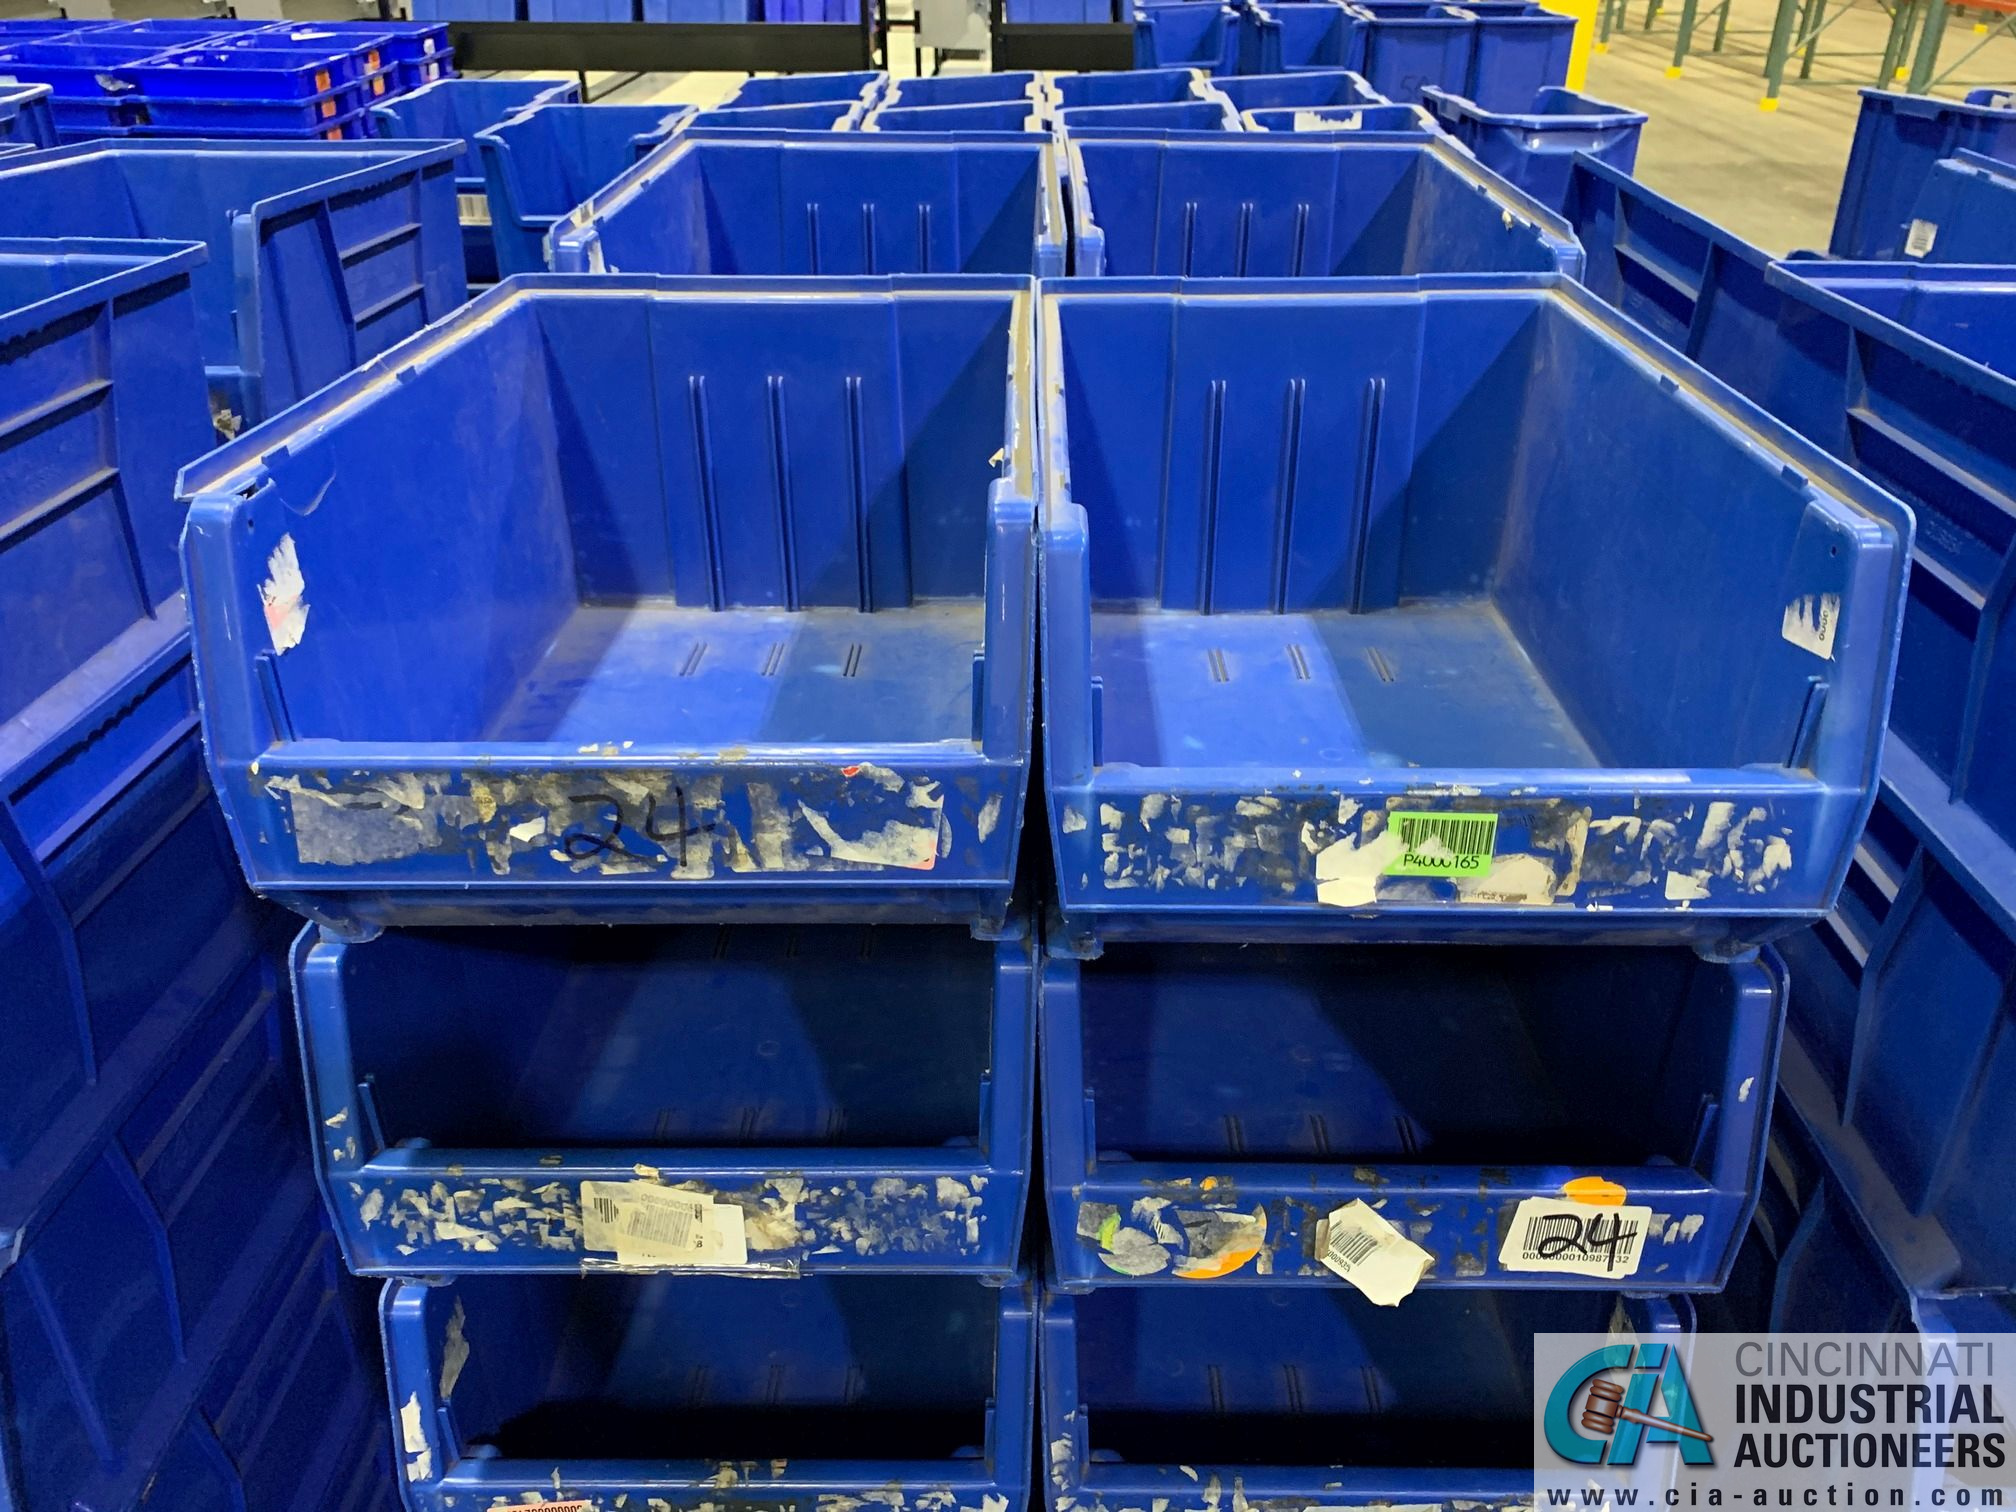 "QUANTUM MODEL QUS954 STACKABLE PLASTIC HULK CONTAINERS, SIZE 16"" X 24"" X 11"" DEEP - (3) SKIDS TOTAL - Image 5 of 5"